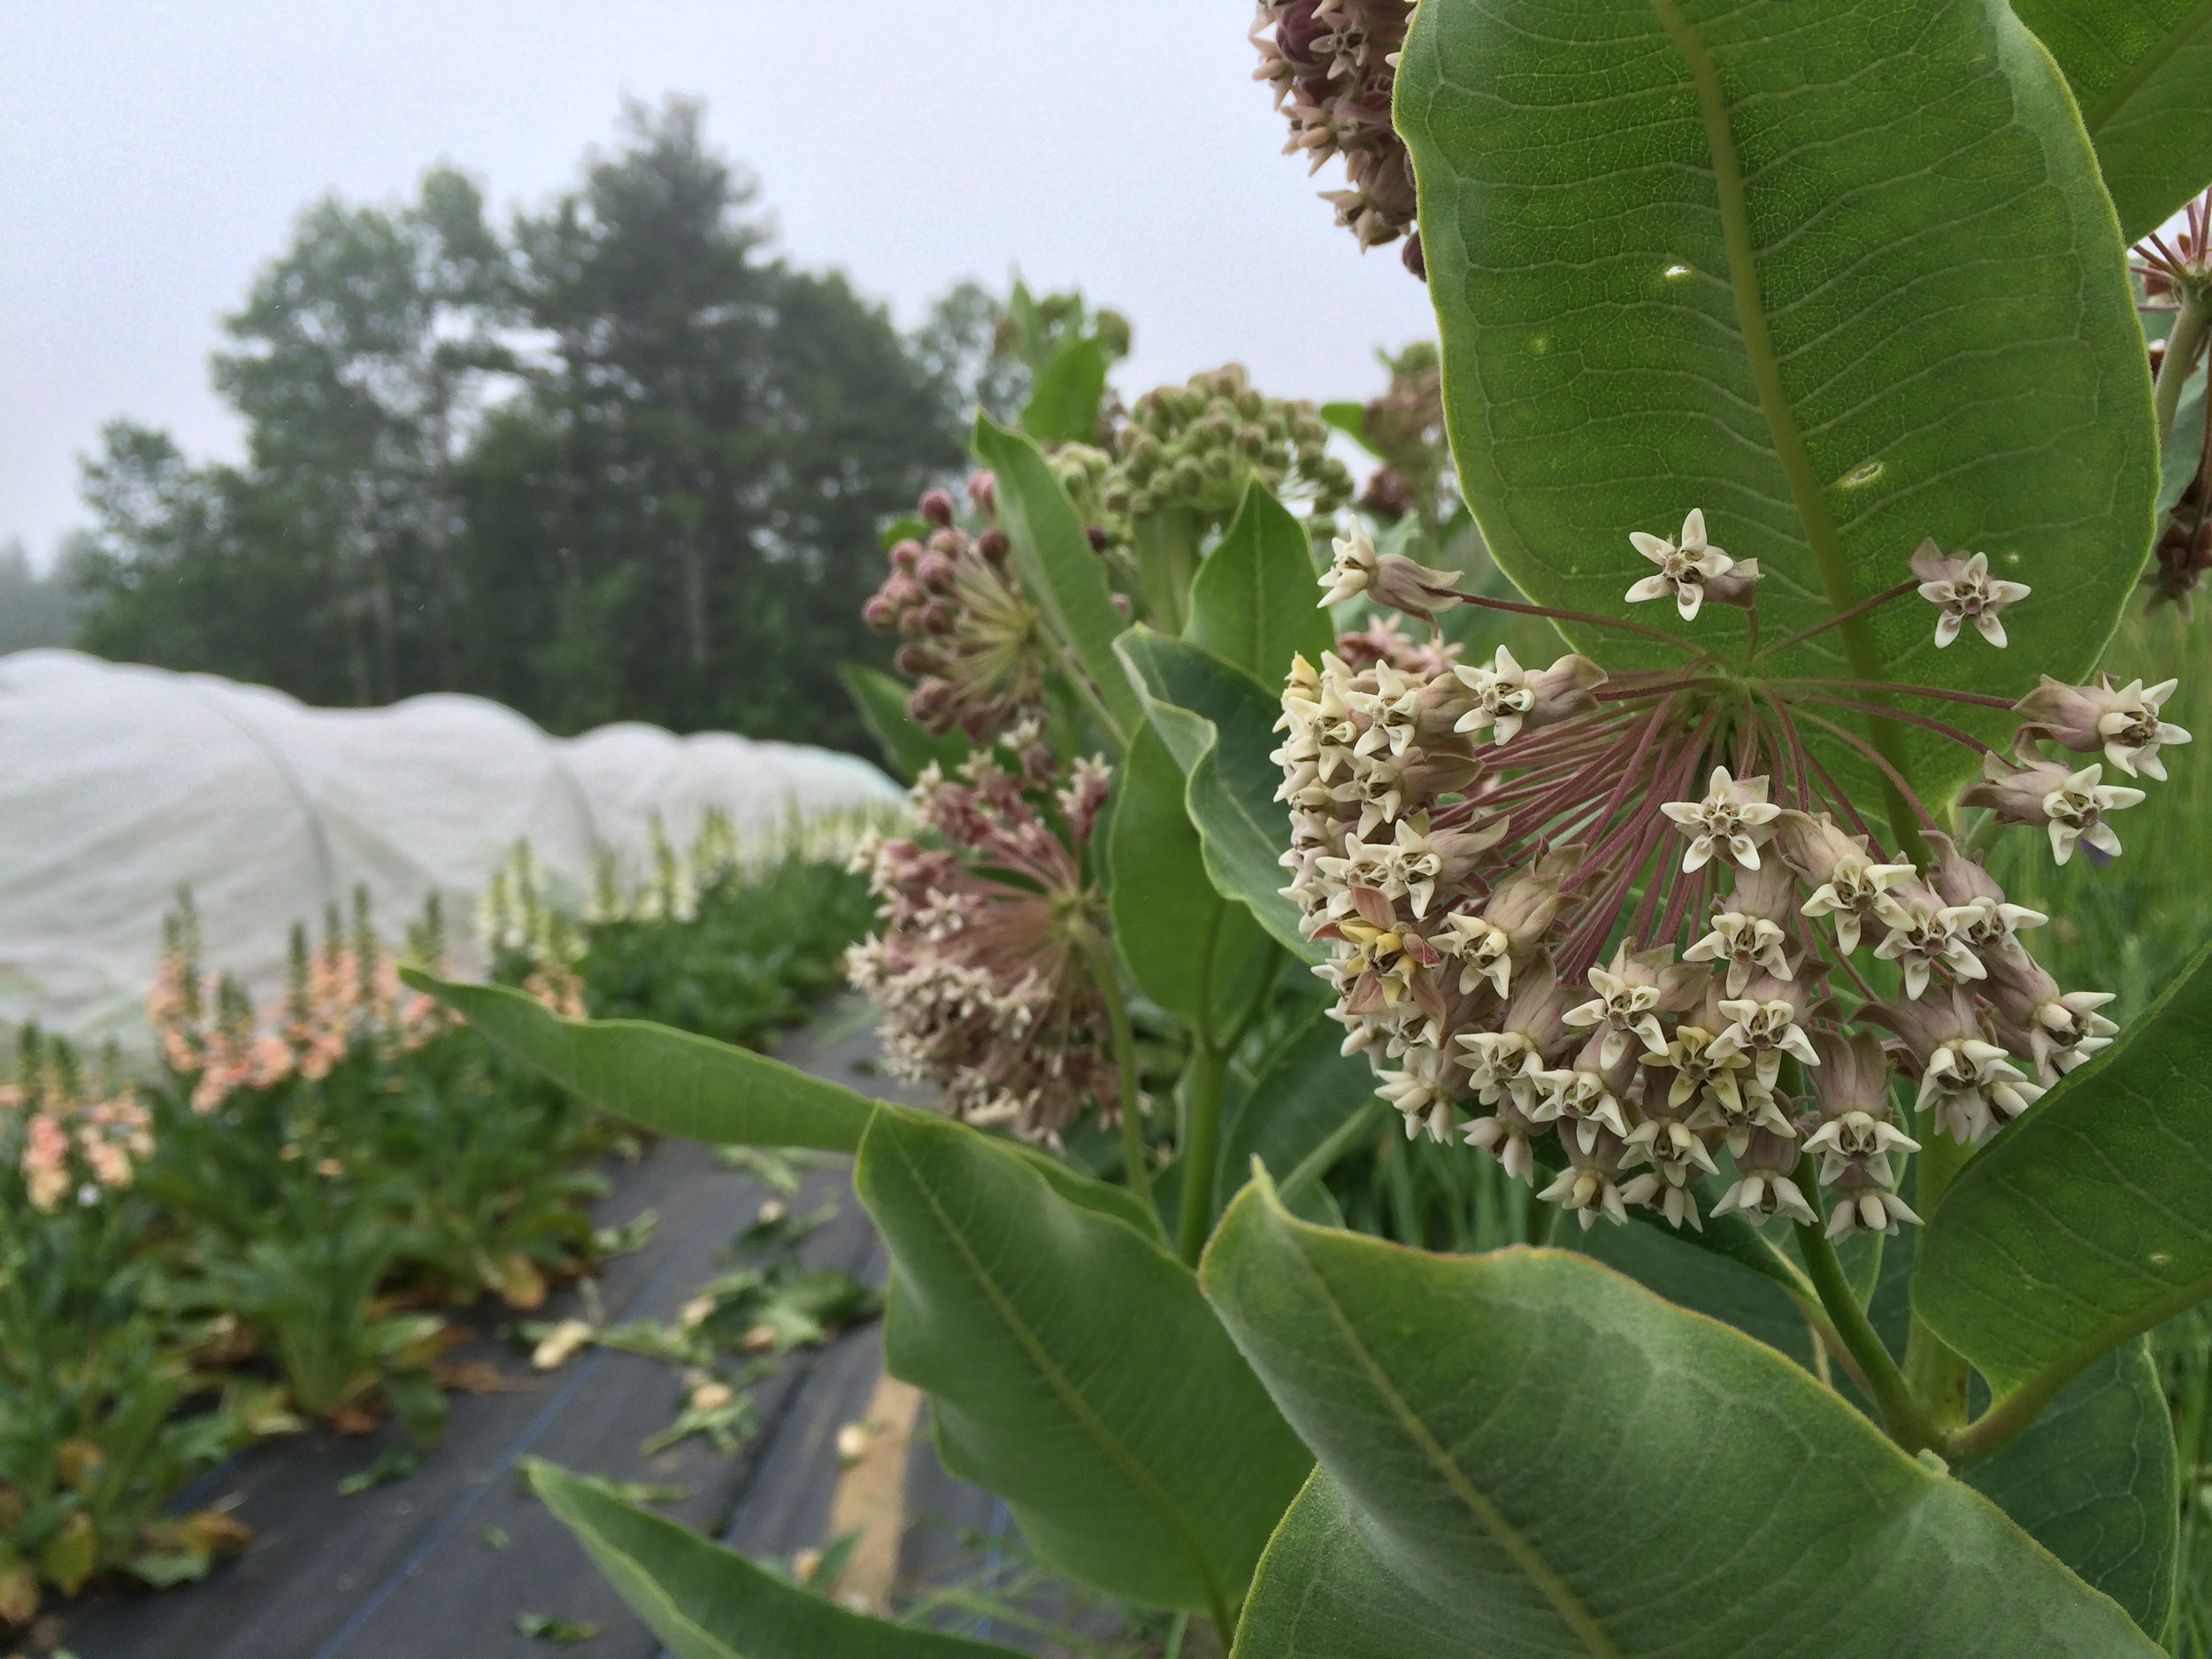 Native milkweed grows adjacent to our flower field and is a main source of food for monarch butterfly caterpillars